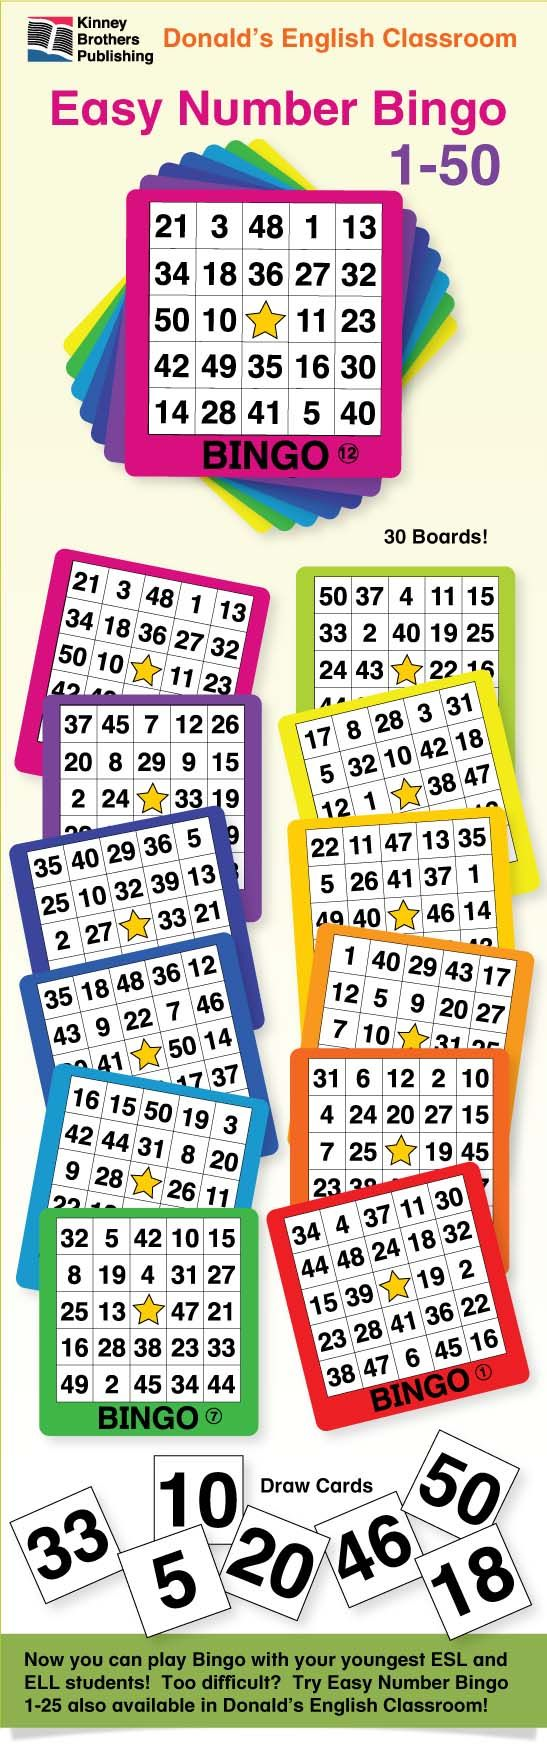 Easy Number Bingo 150 allows me to play number Bingo with